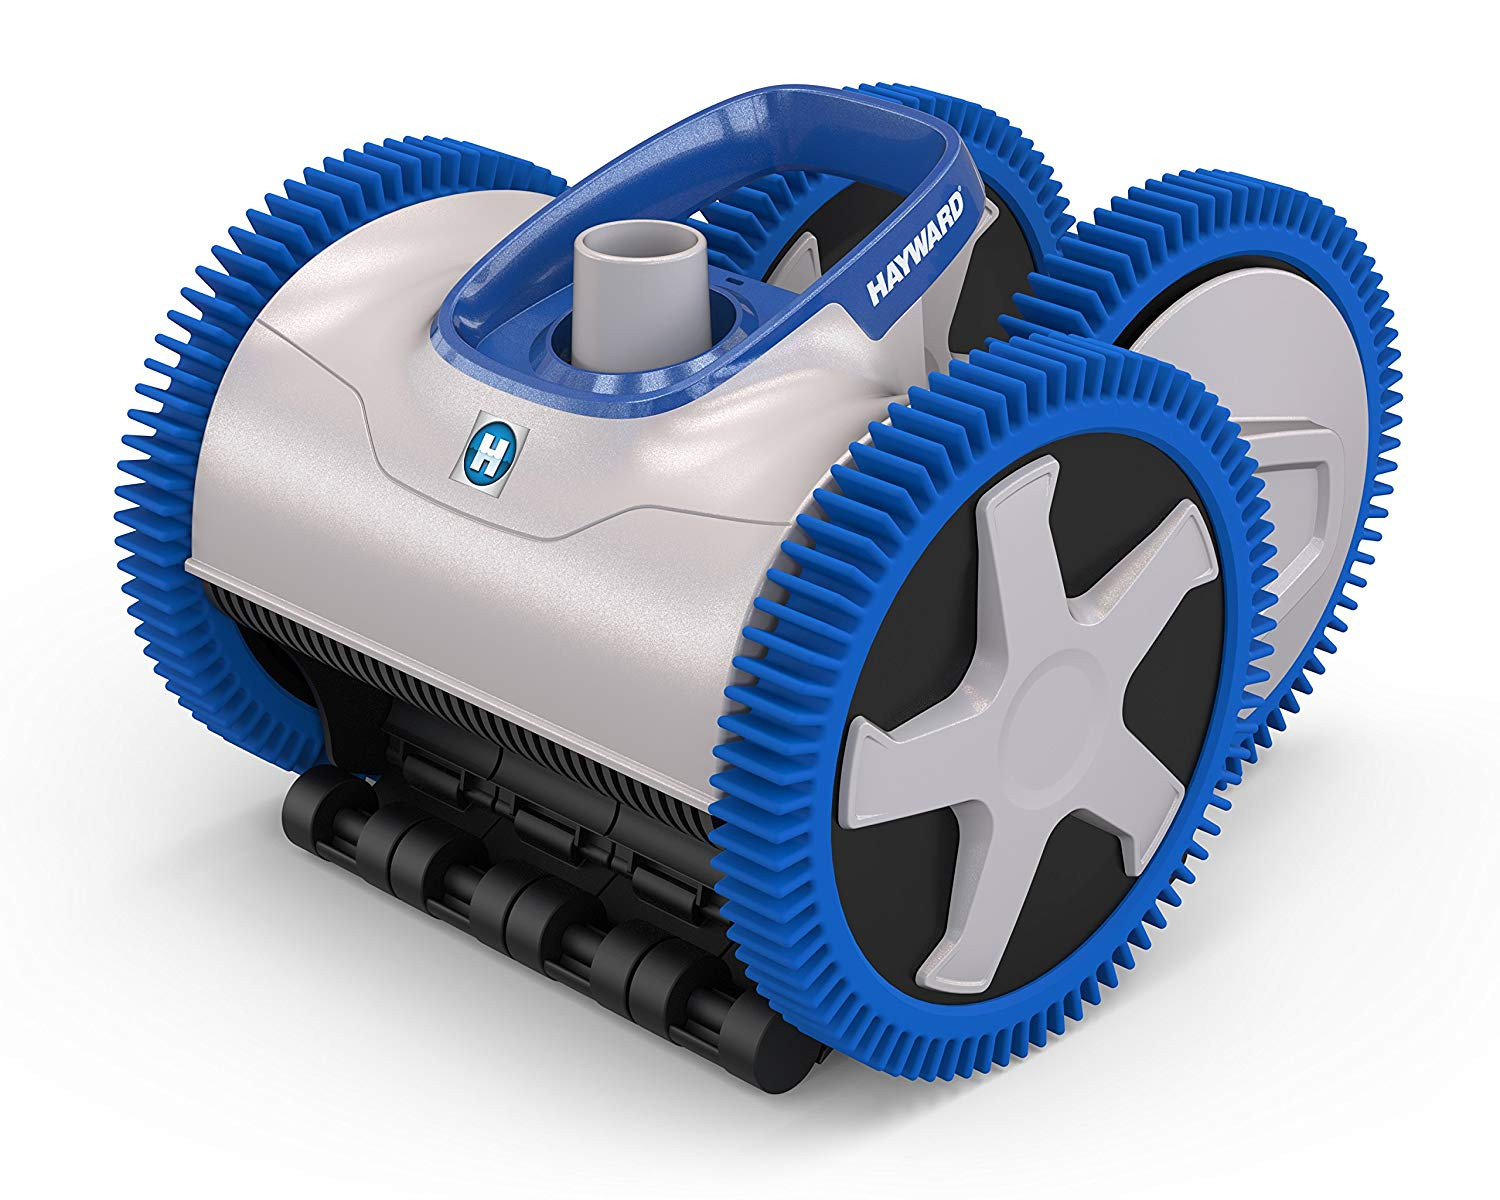 Best ideas about Best Inground Pool Vacuum . Save or Pin Best Suction Pool Cleaner incl handheld pool vacuums Now.